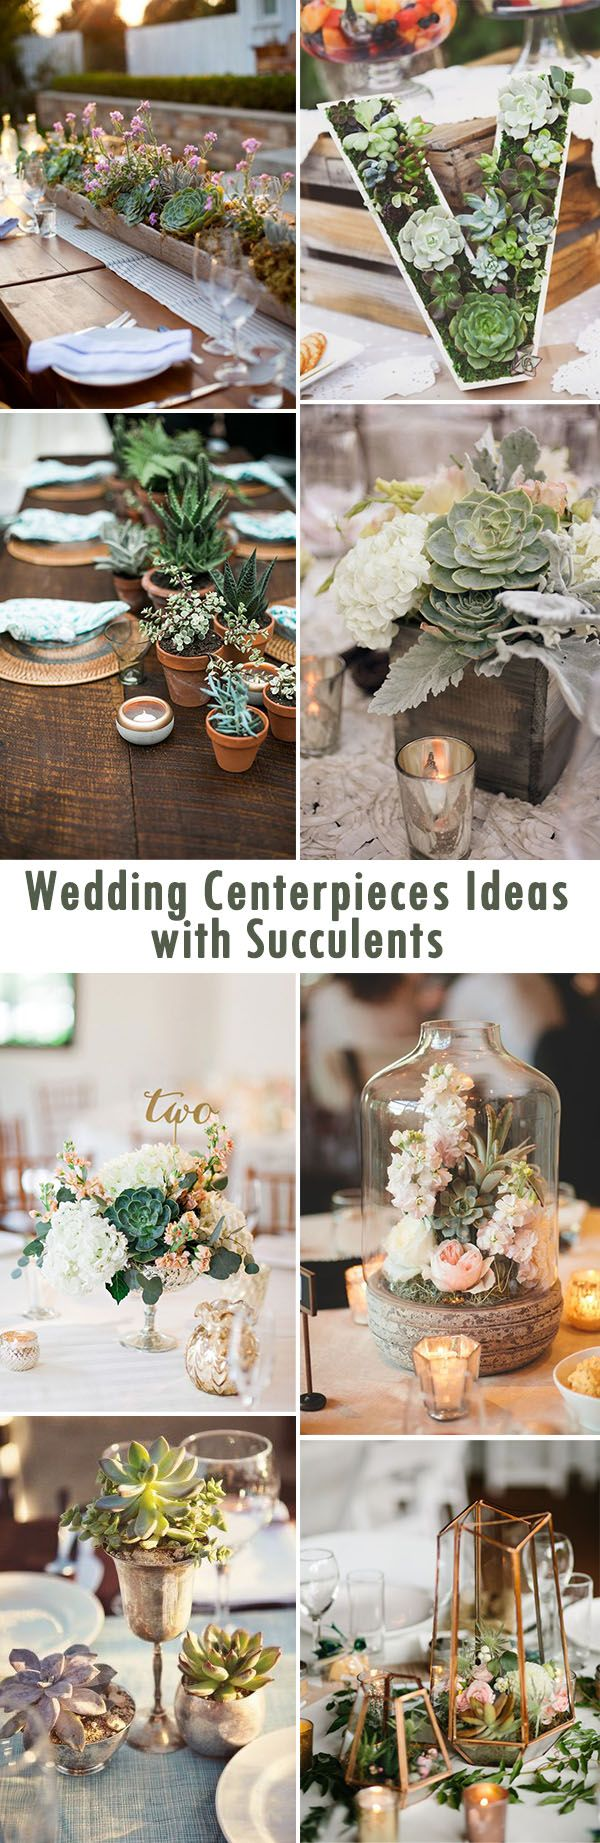 best ideas to incorporate succulents into your weddings